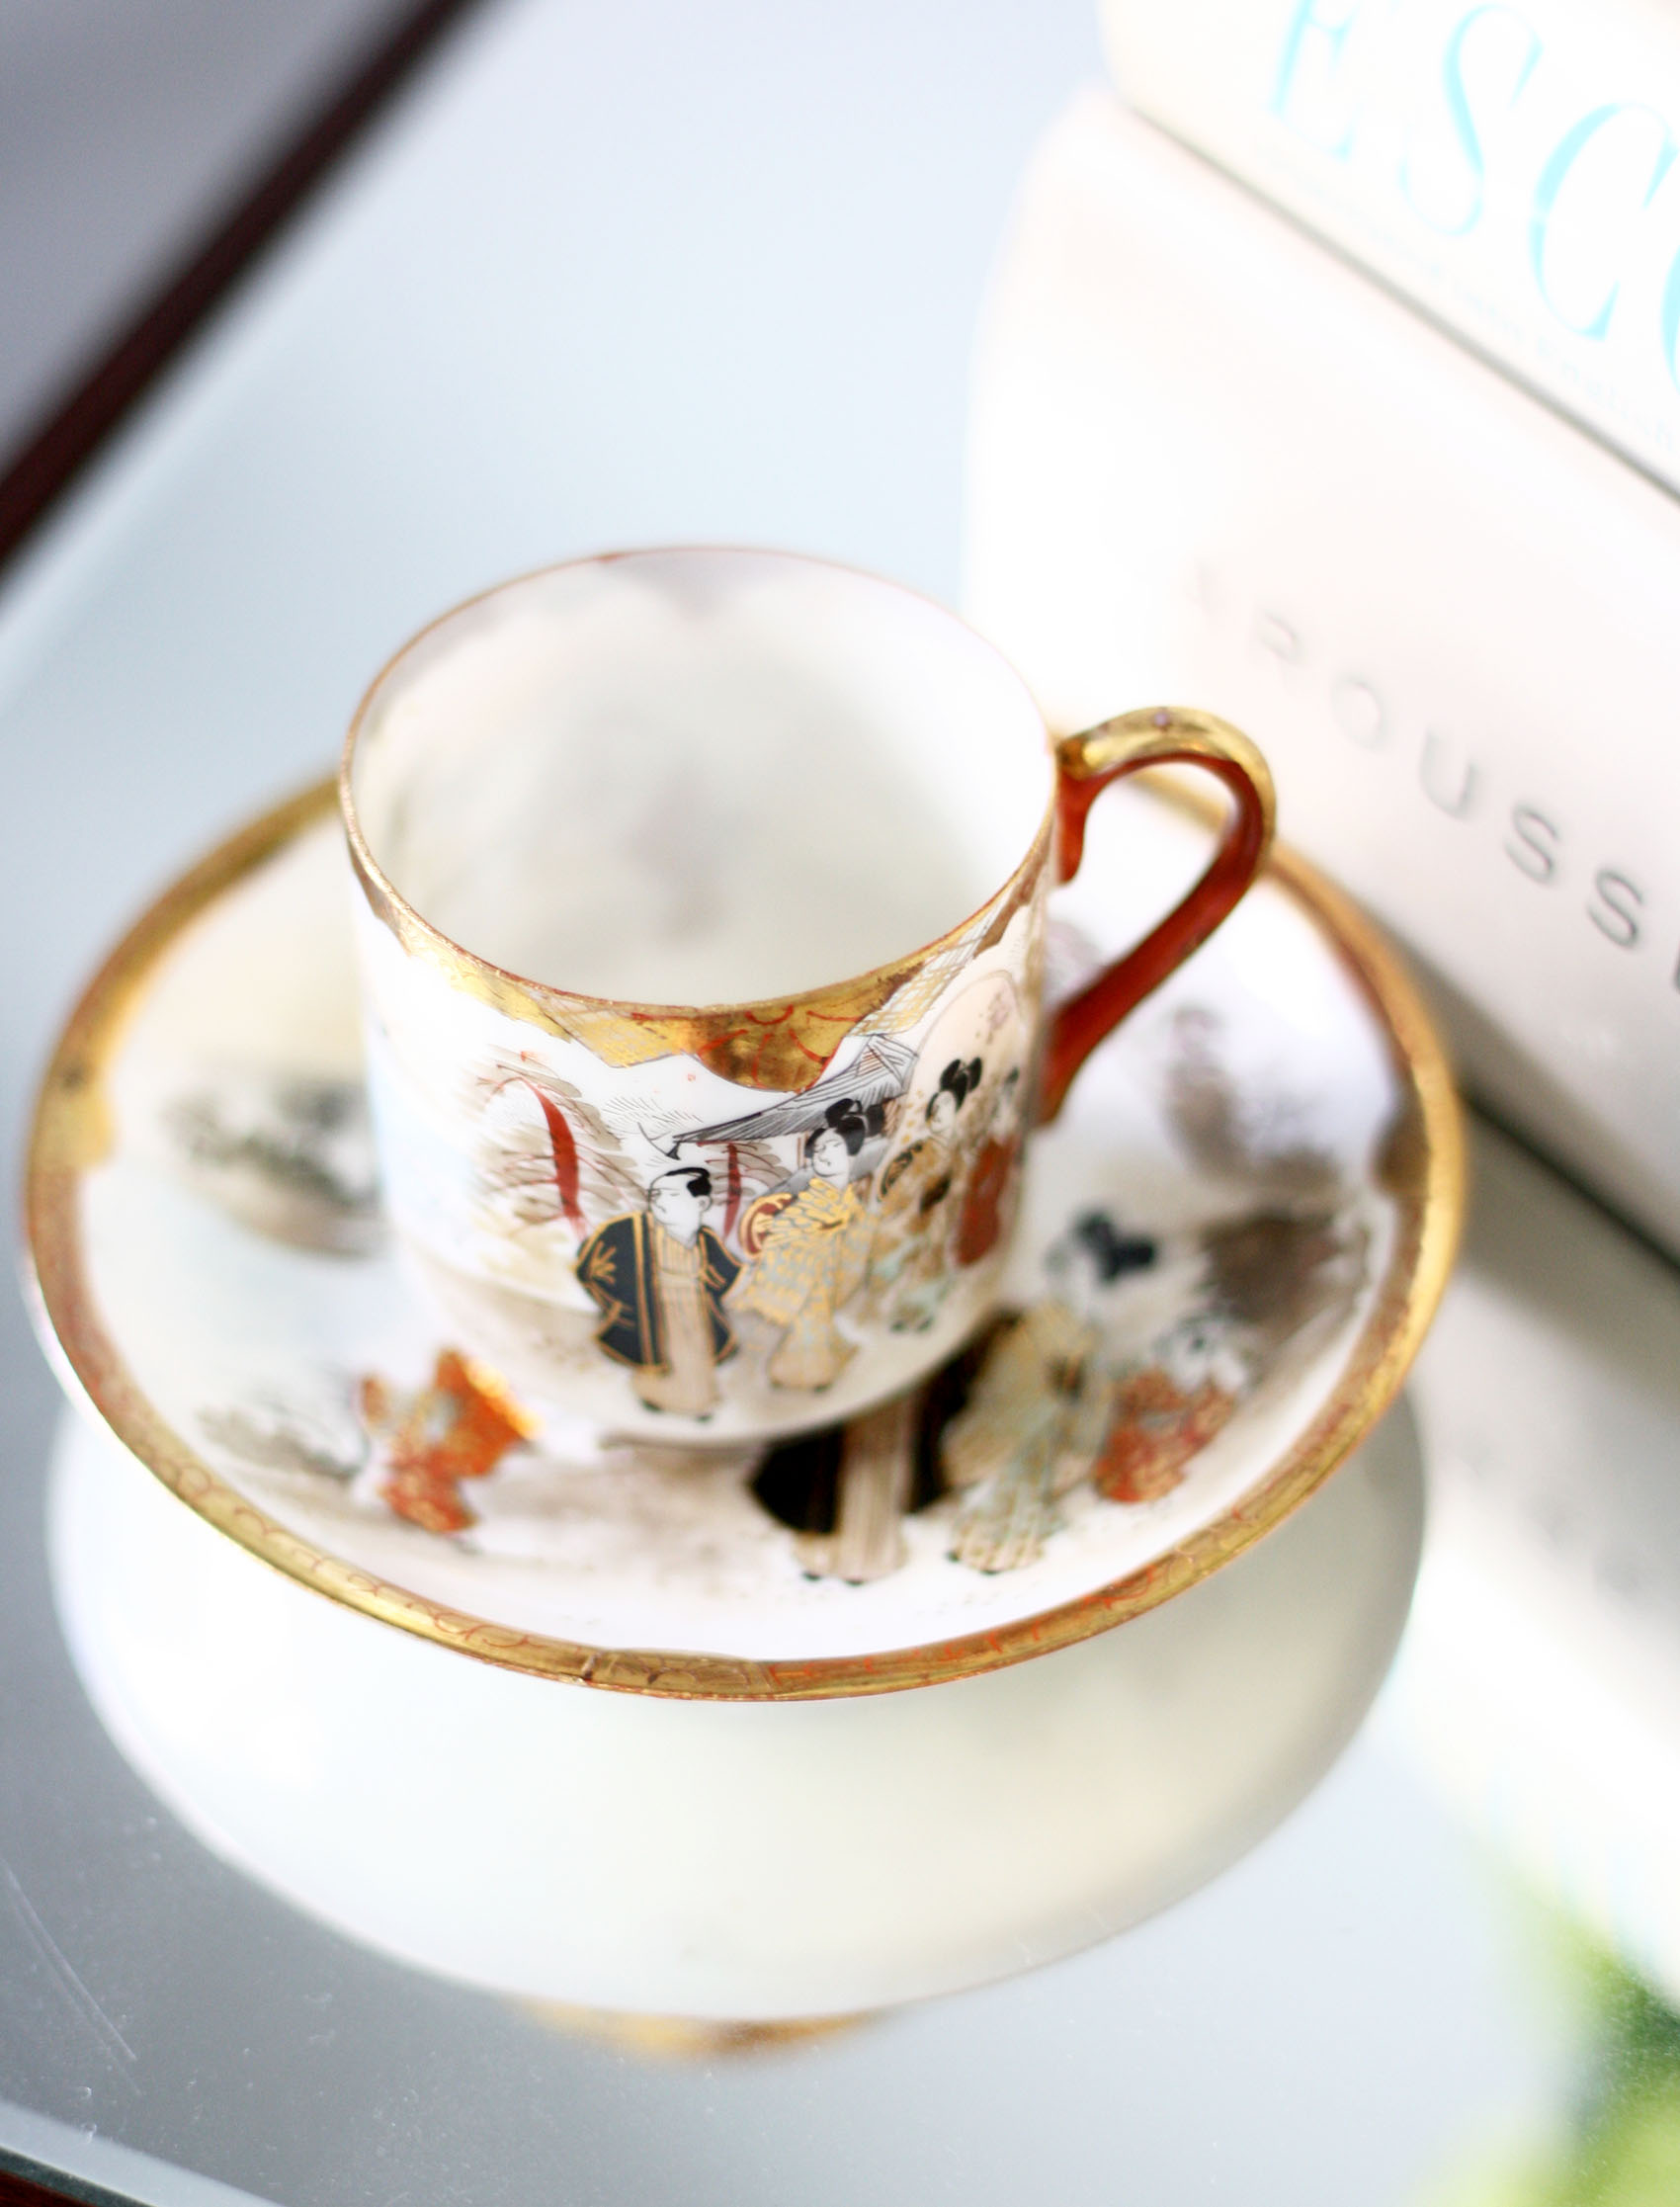 antique demitasse cup, hand painted | via @victoriamstudio